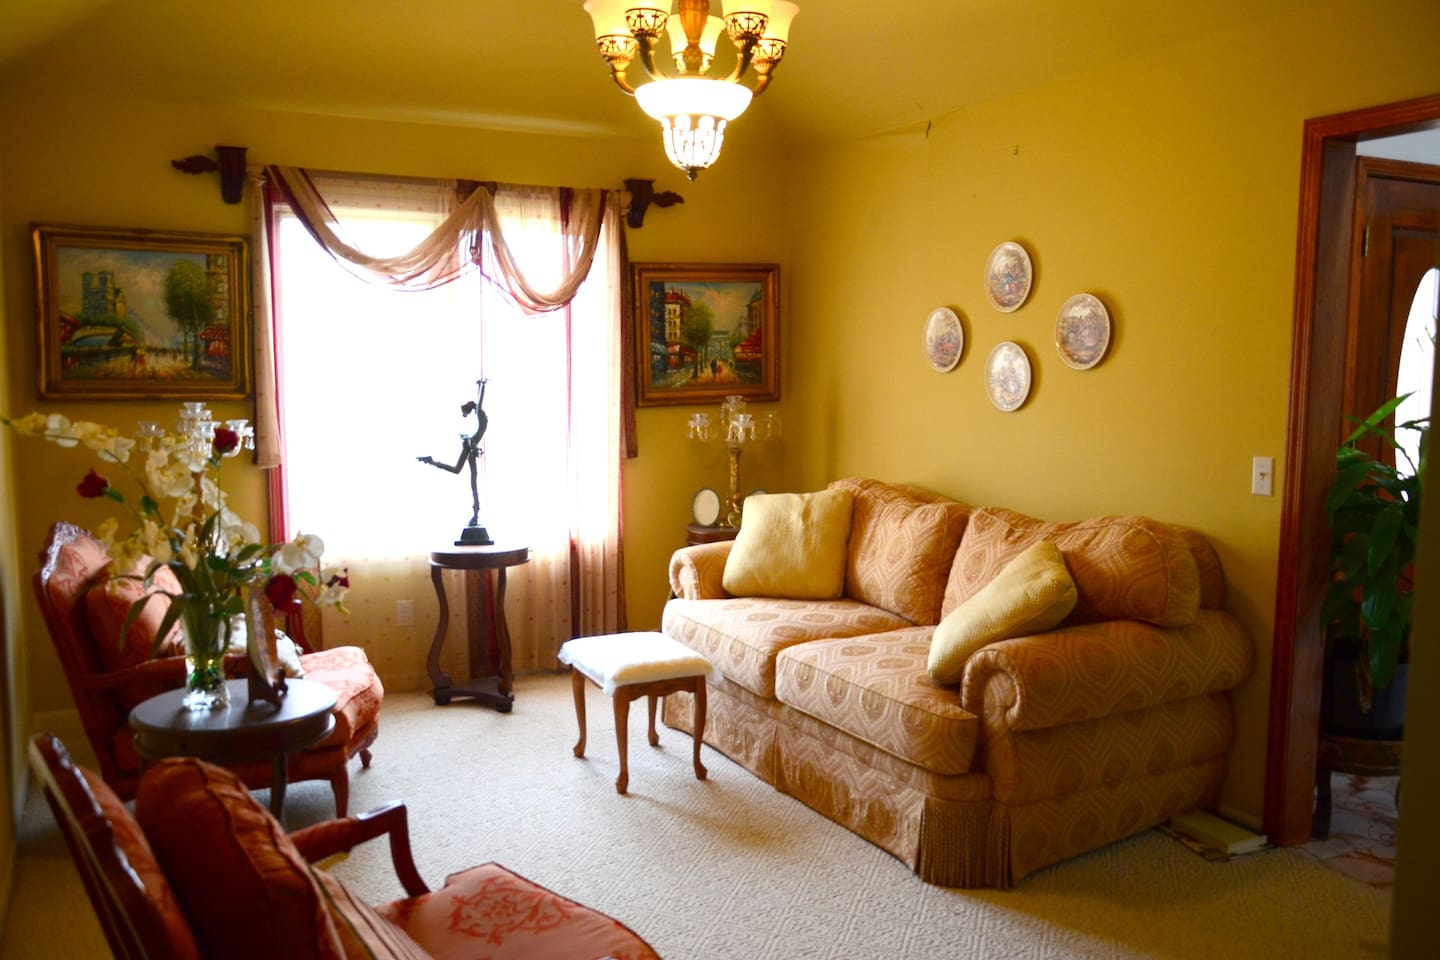 Guests are welcome to use this living room.